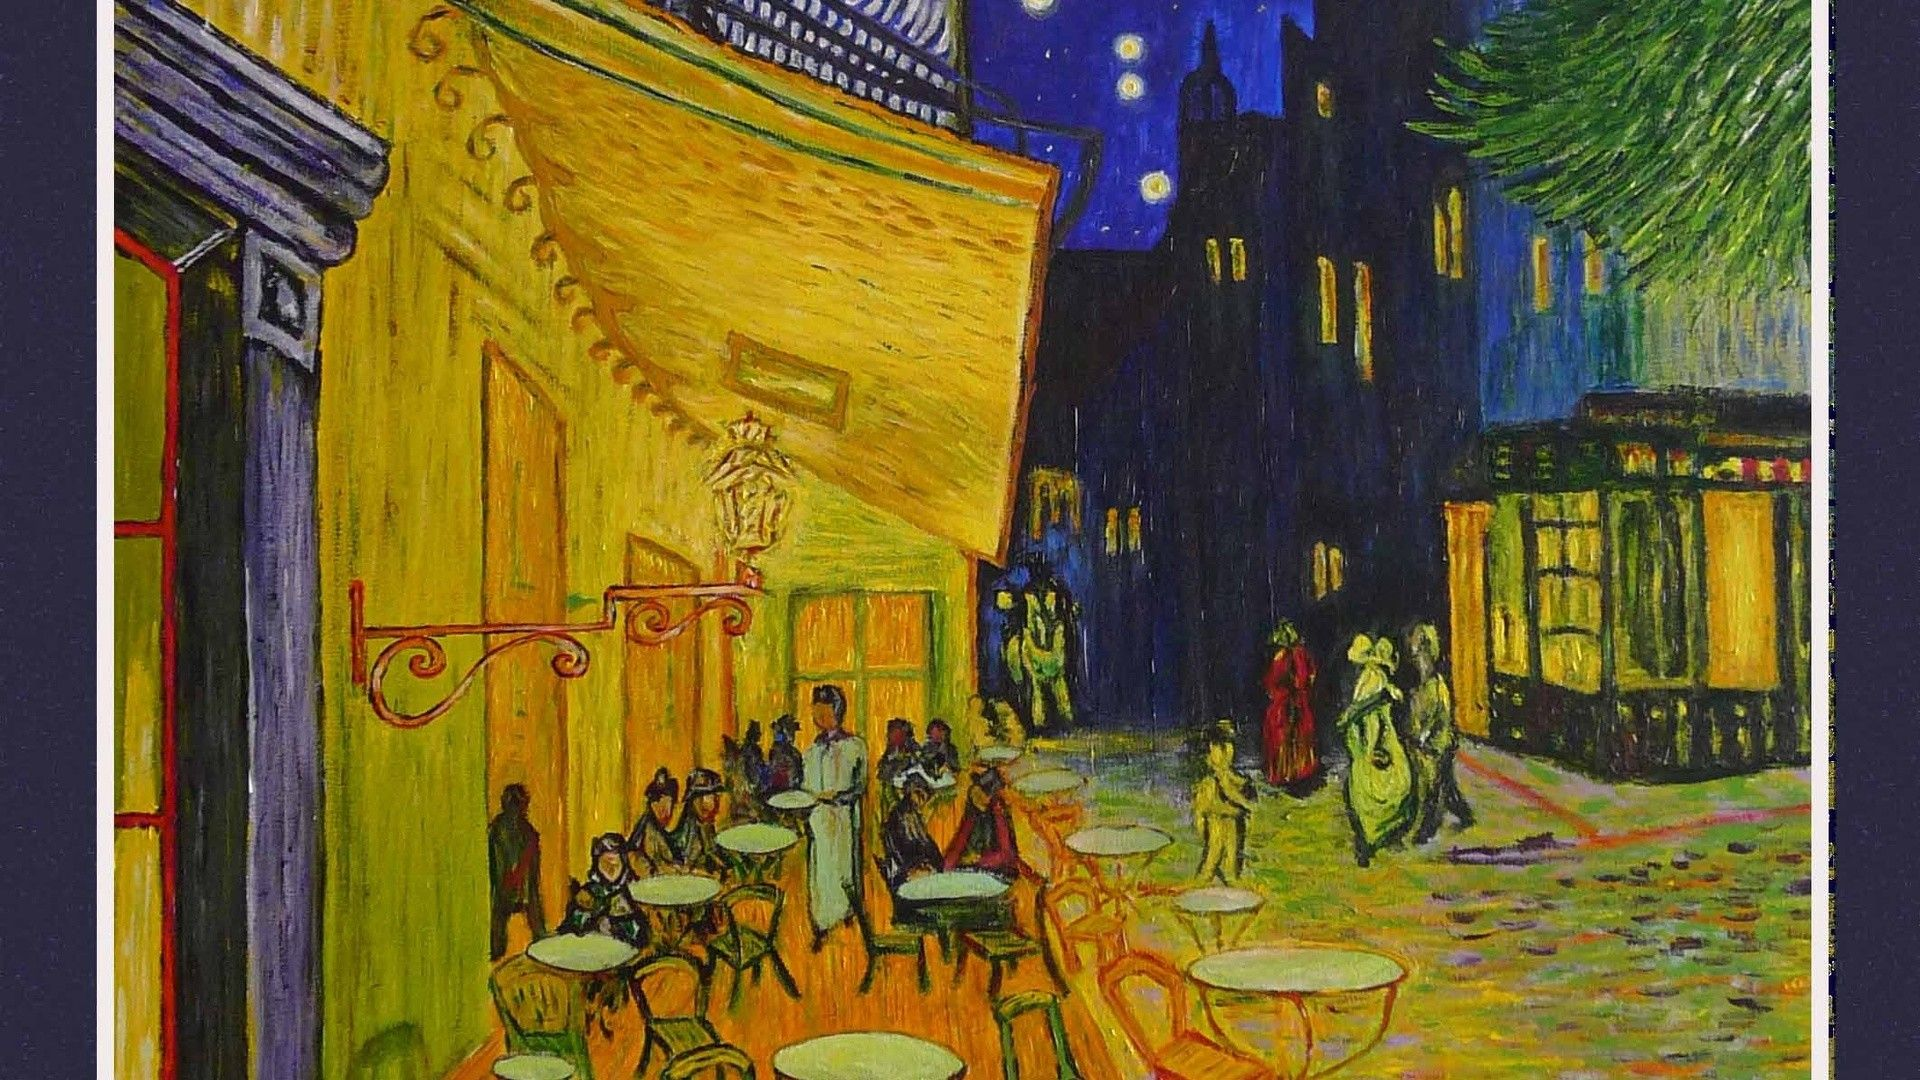 Wallpapers 60 1920x1080 van gogh cafe terrace at night cafe night van gogh computer f - Hd wallpaper van gogh ...